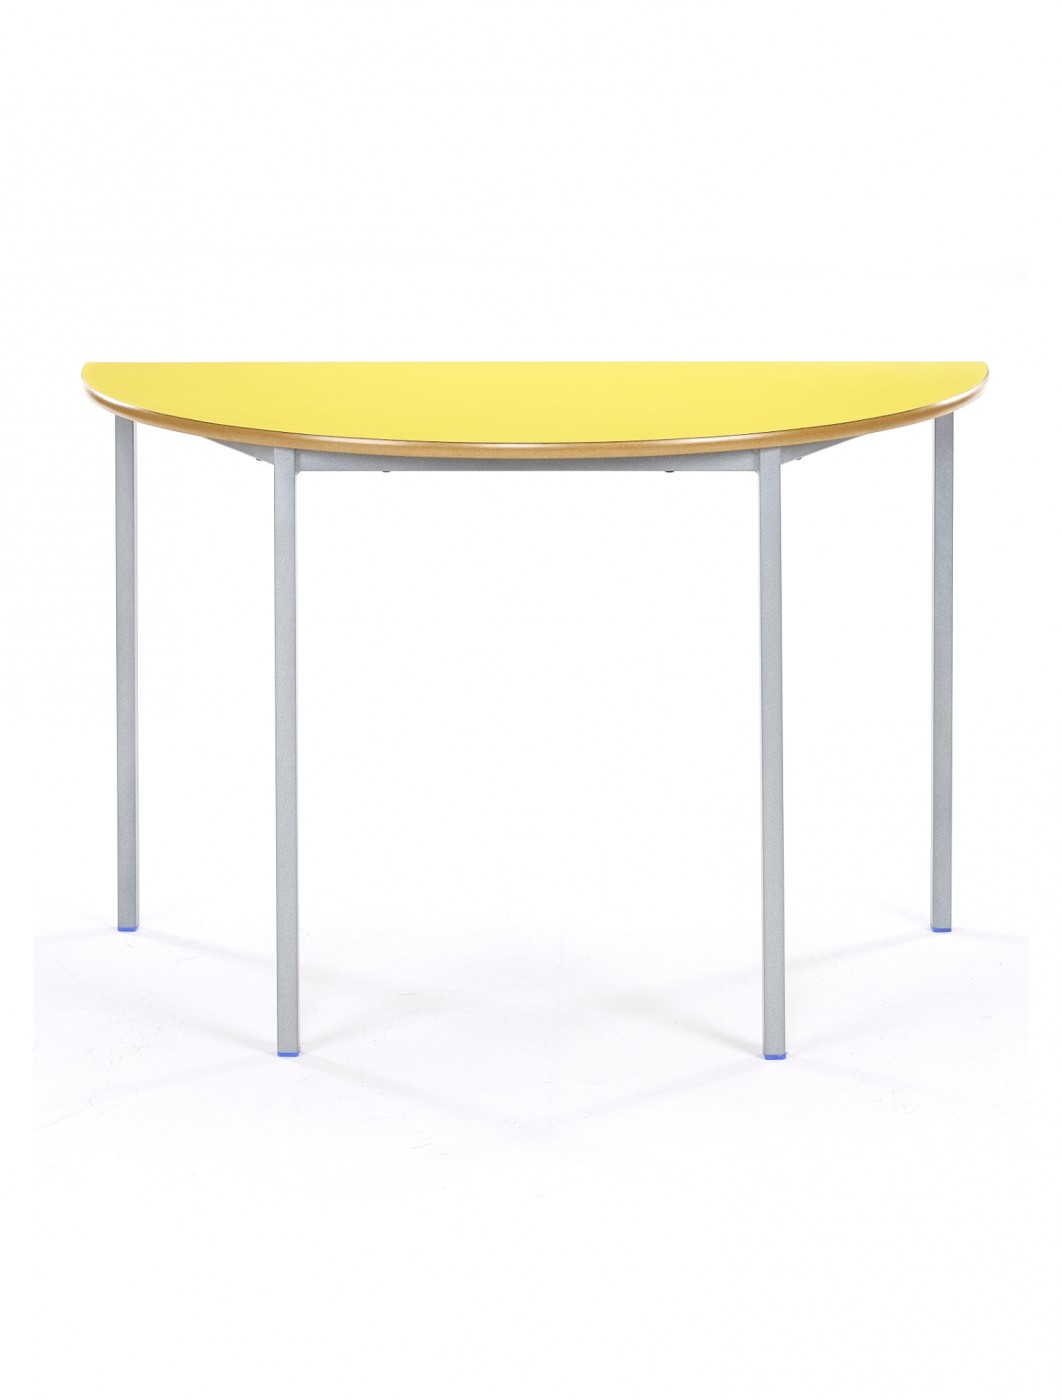 Classroom Tables - 1200mm Semi-Circular Tables SQSS-12SC-MD - Fully Welded